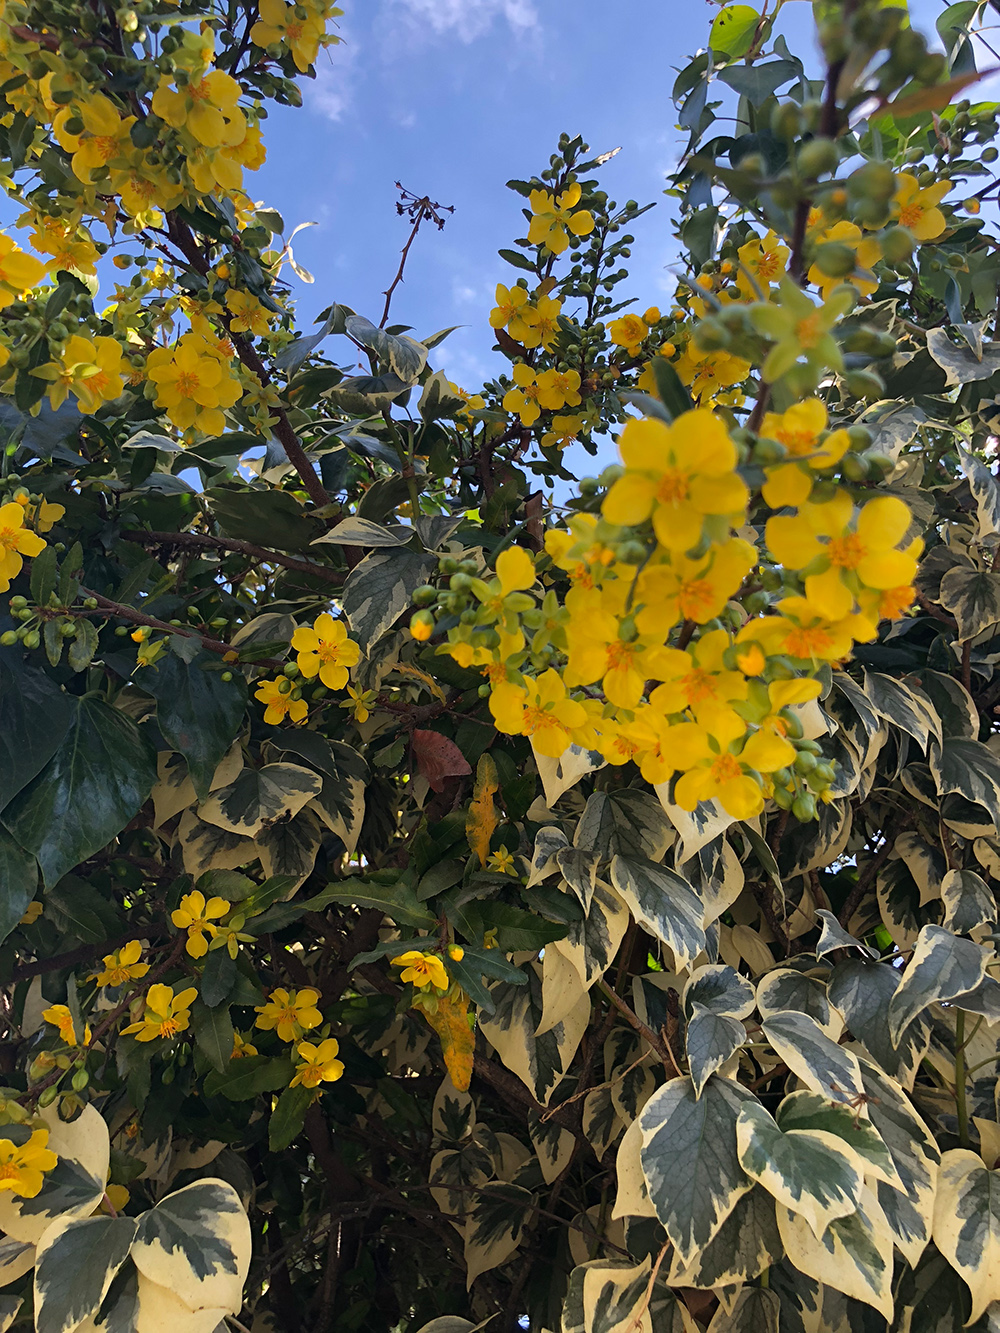 Help identifying yellow flowering shrub?